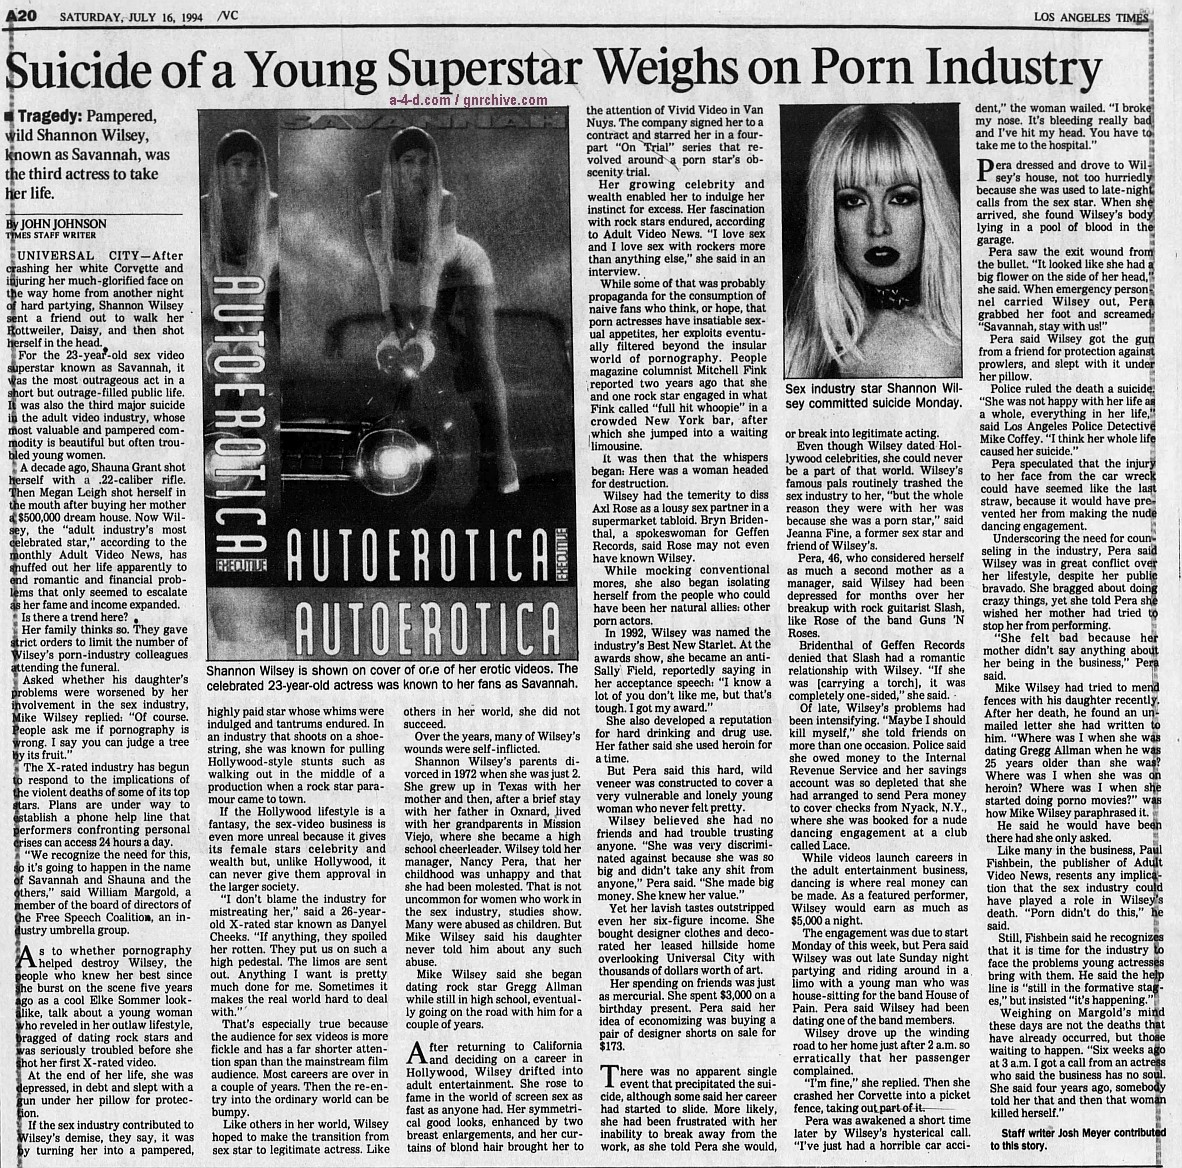 1994.07.16 - Los Angeles Times - Suicide of Young Superstar Weighs on Porn Industry 1994_037